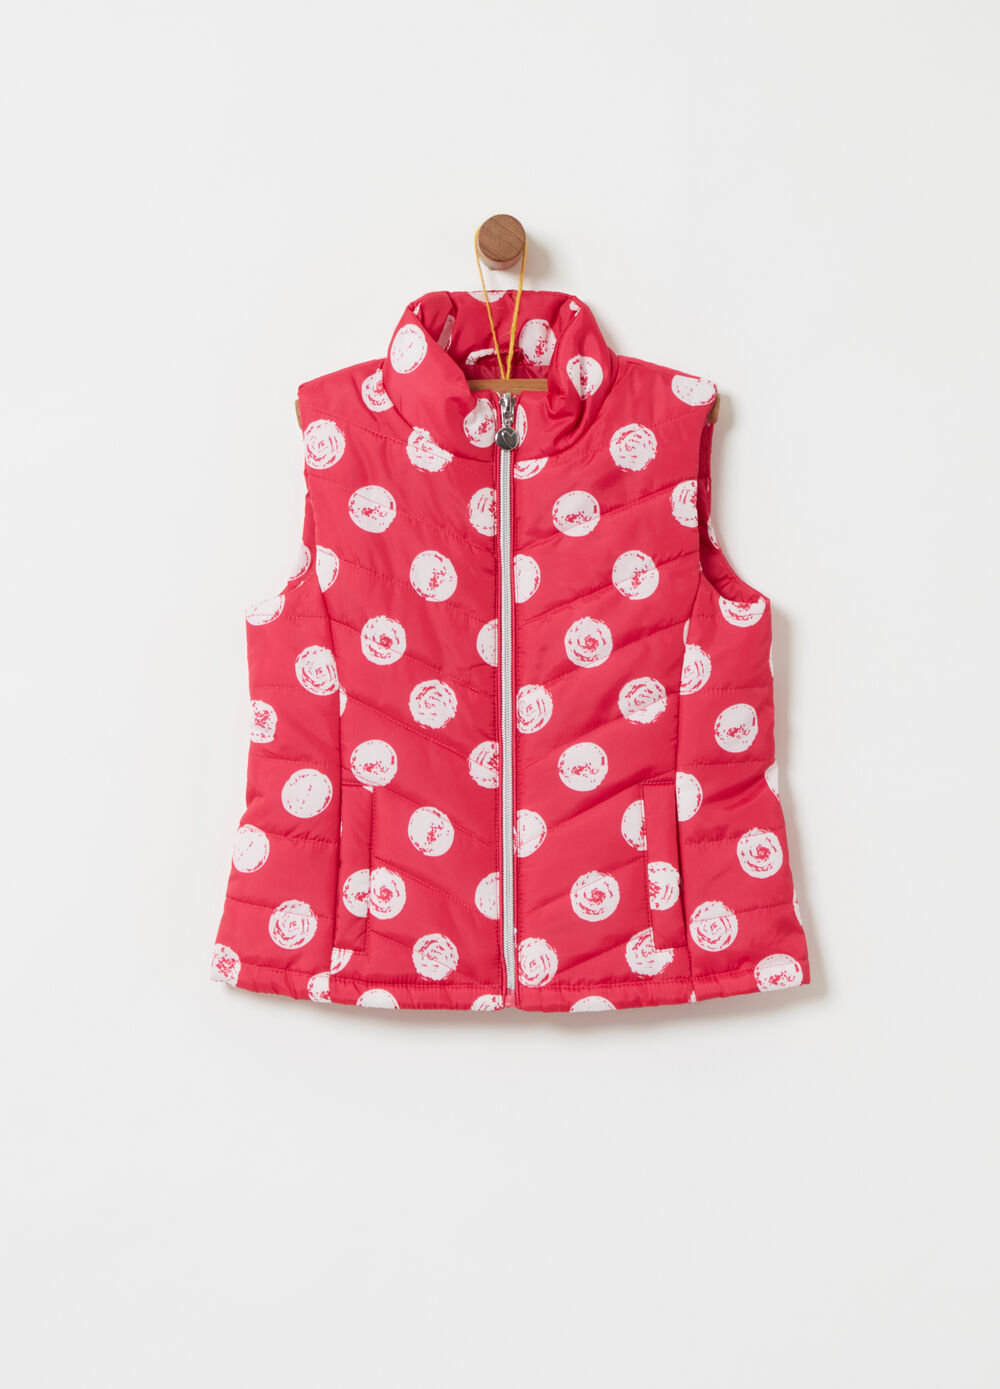 Padded gilet with high collar and polka dot pattern